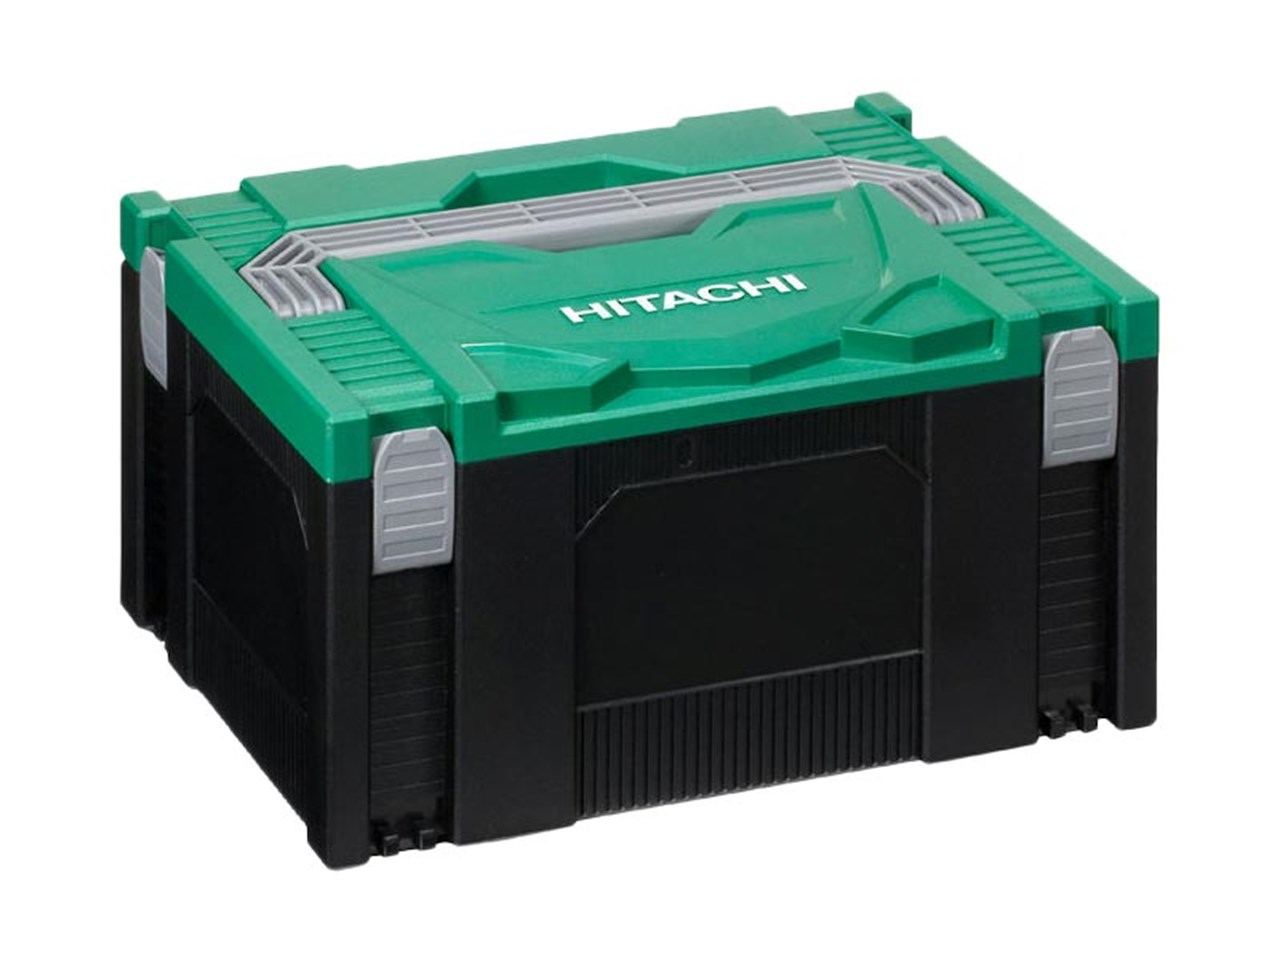 HSC3  402546  Type 3 Stackable  Case System